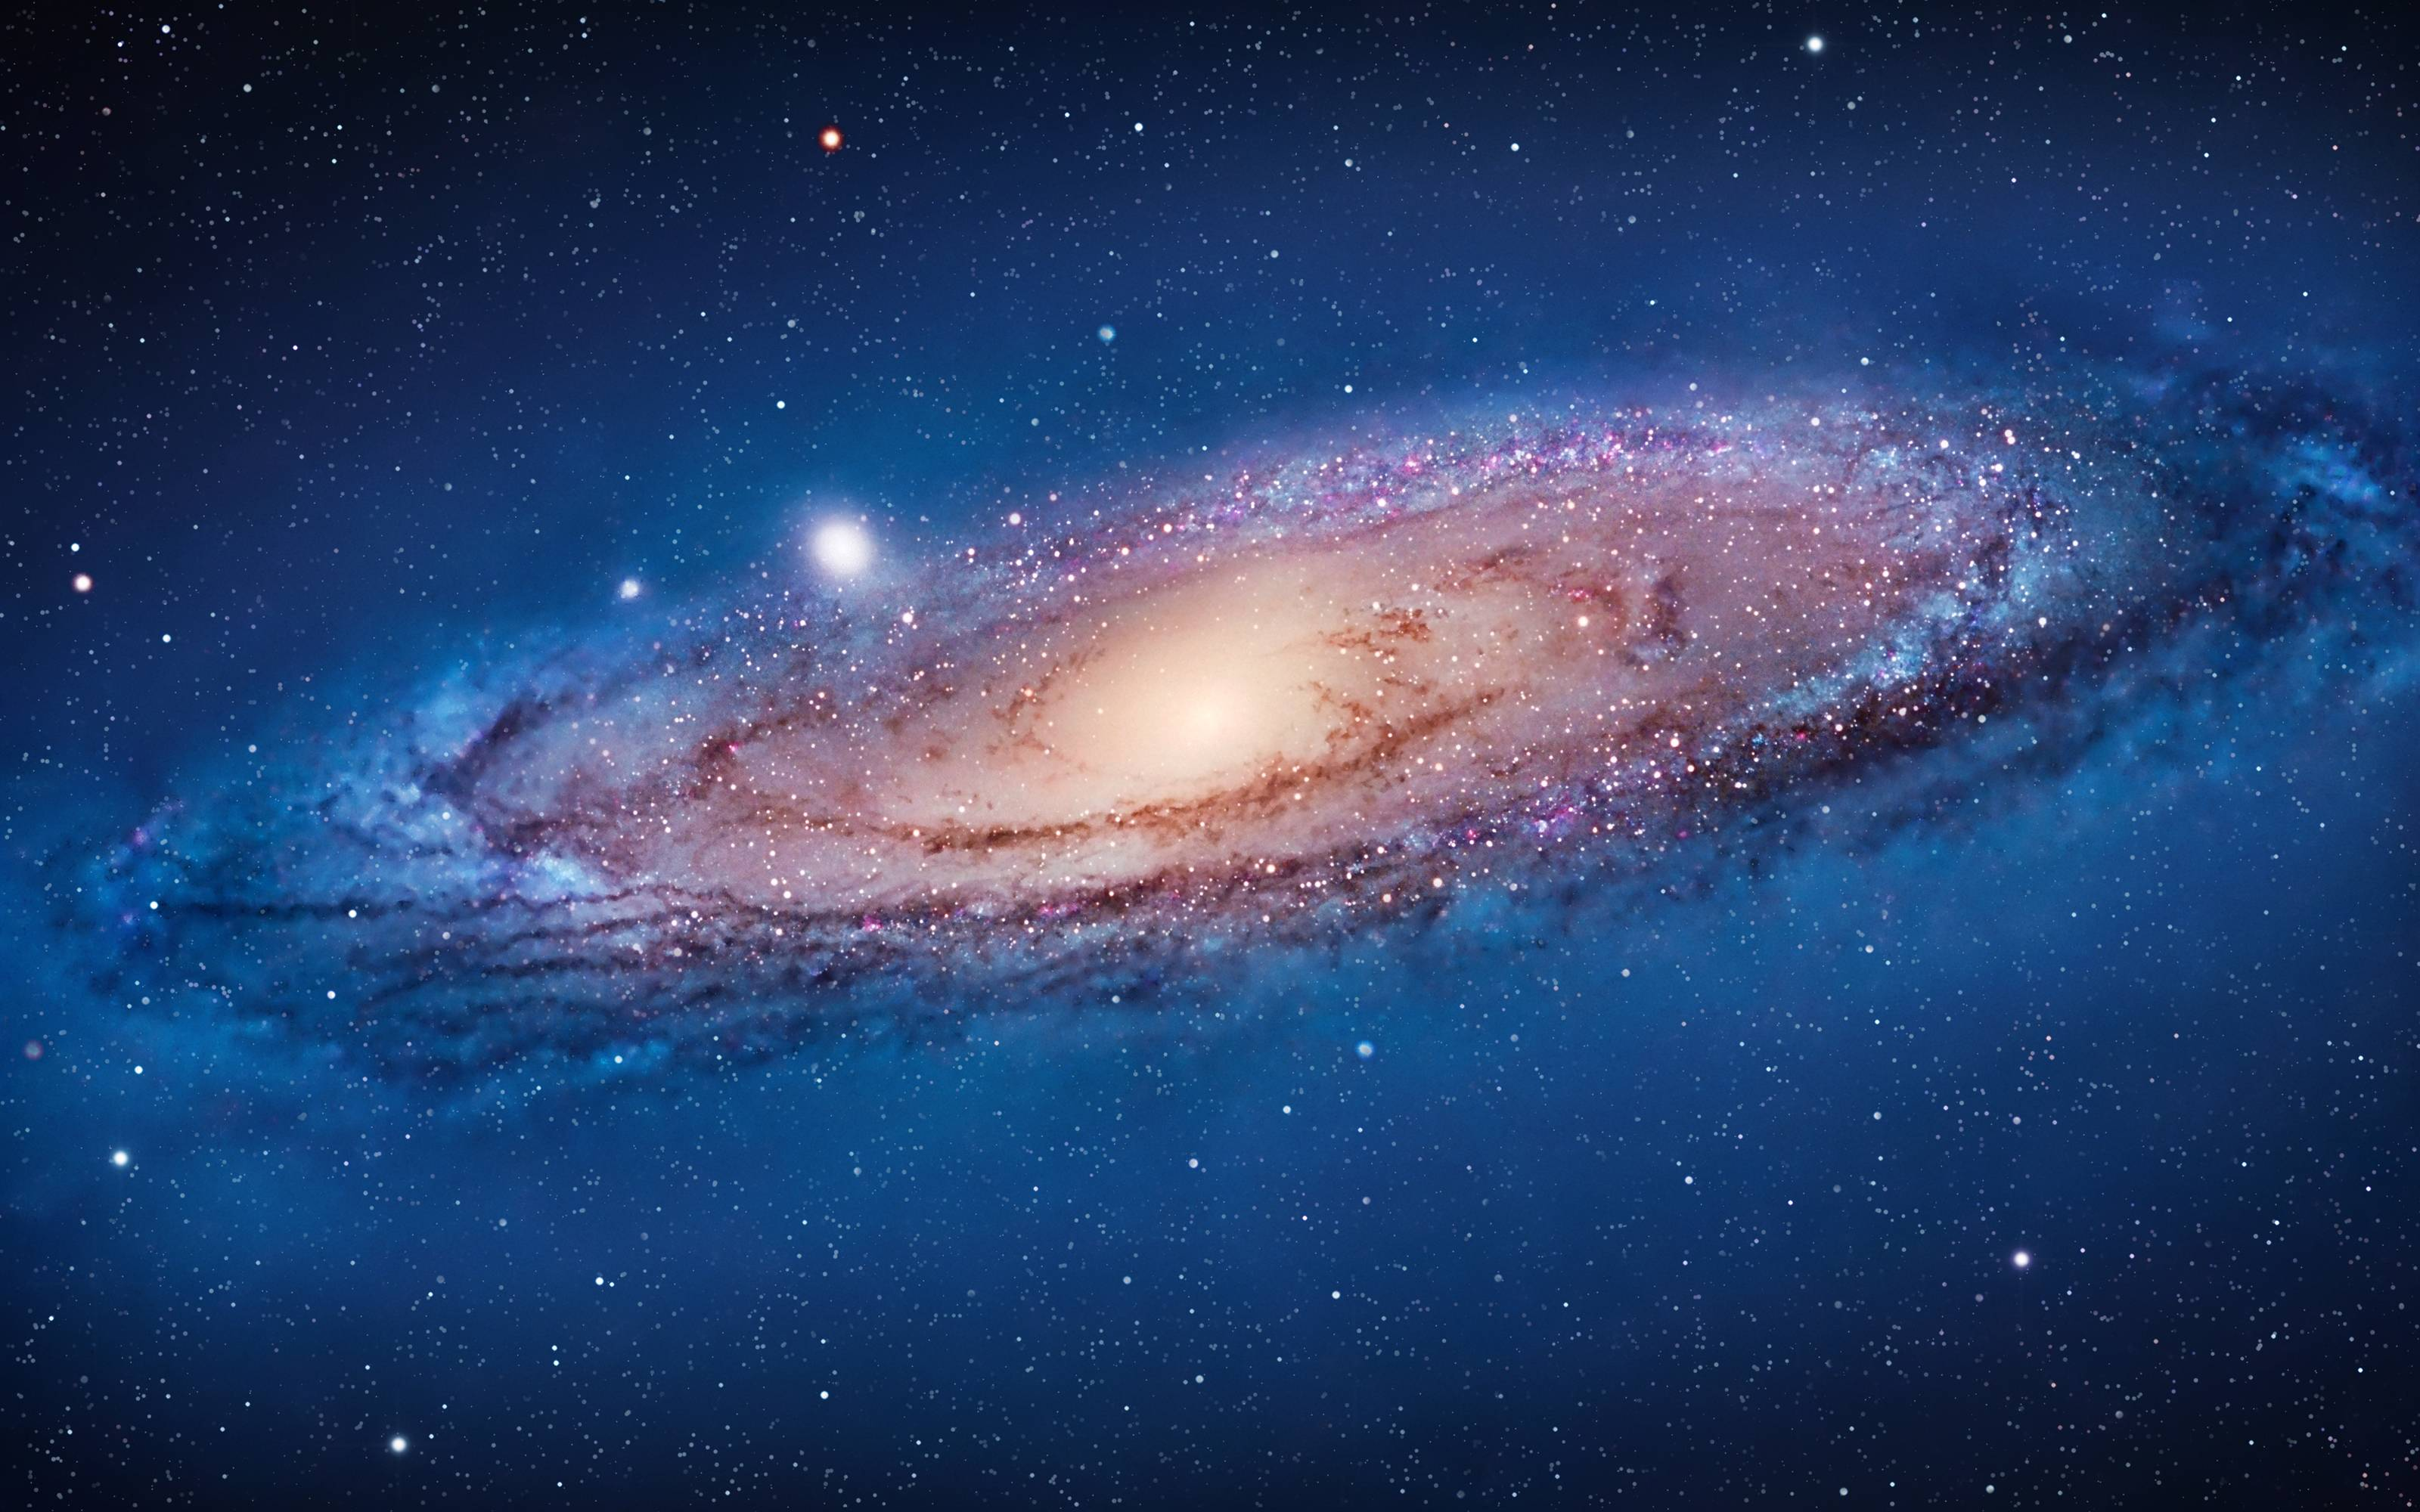 New Mac OS X Lion Galaxy of Andromeda Space Wallpaper from WWDC 3200x2000